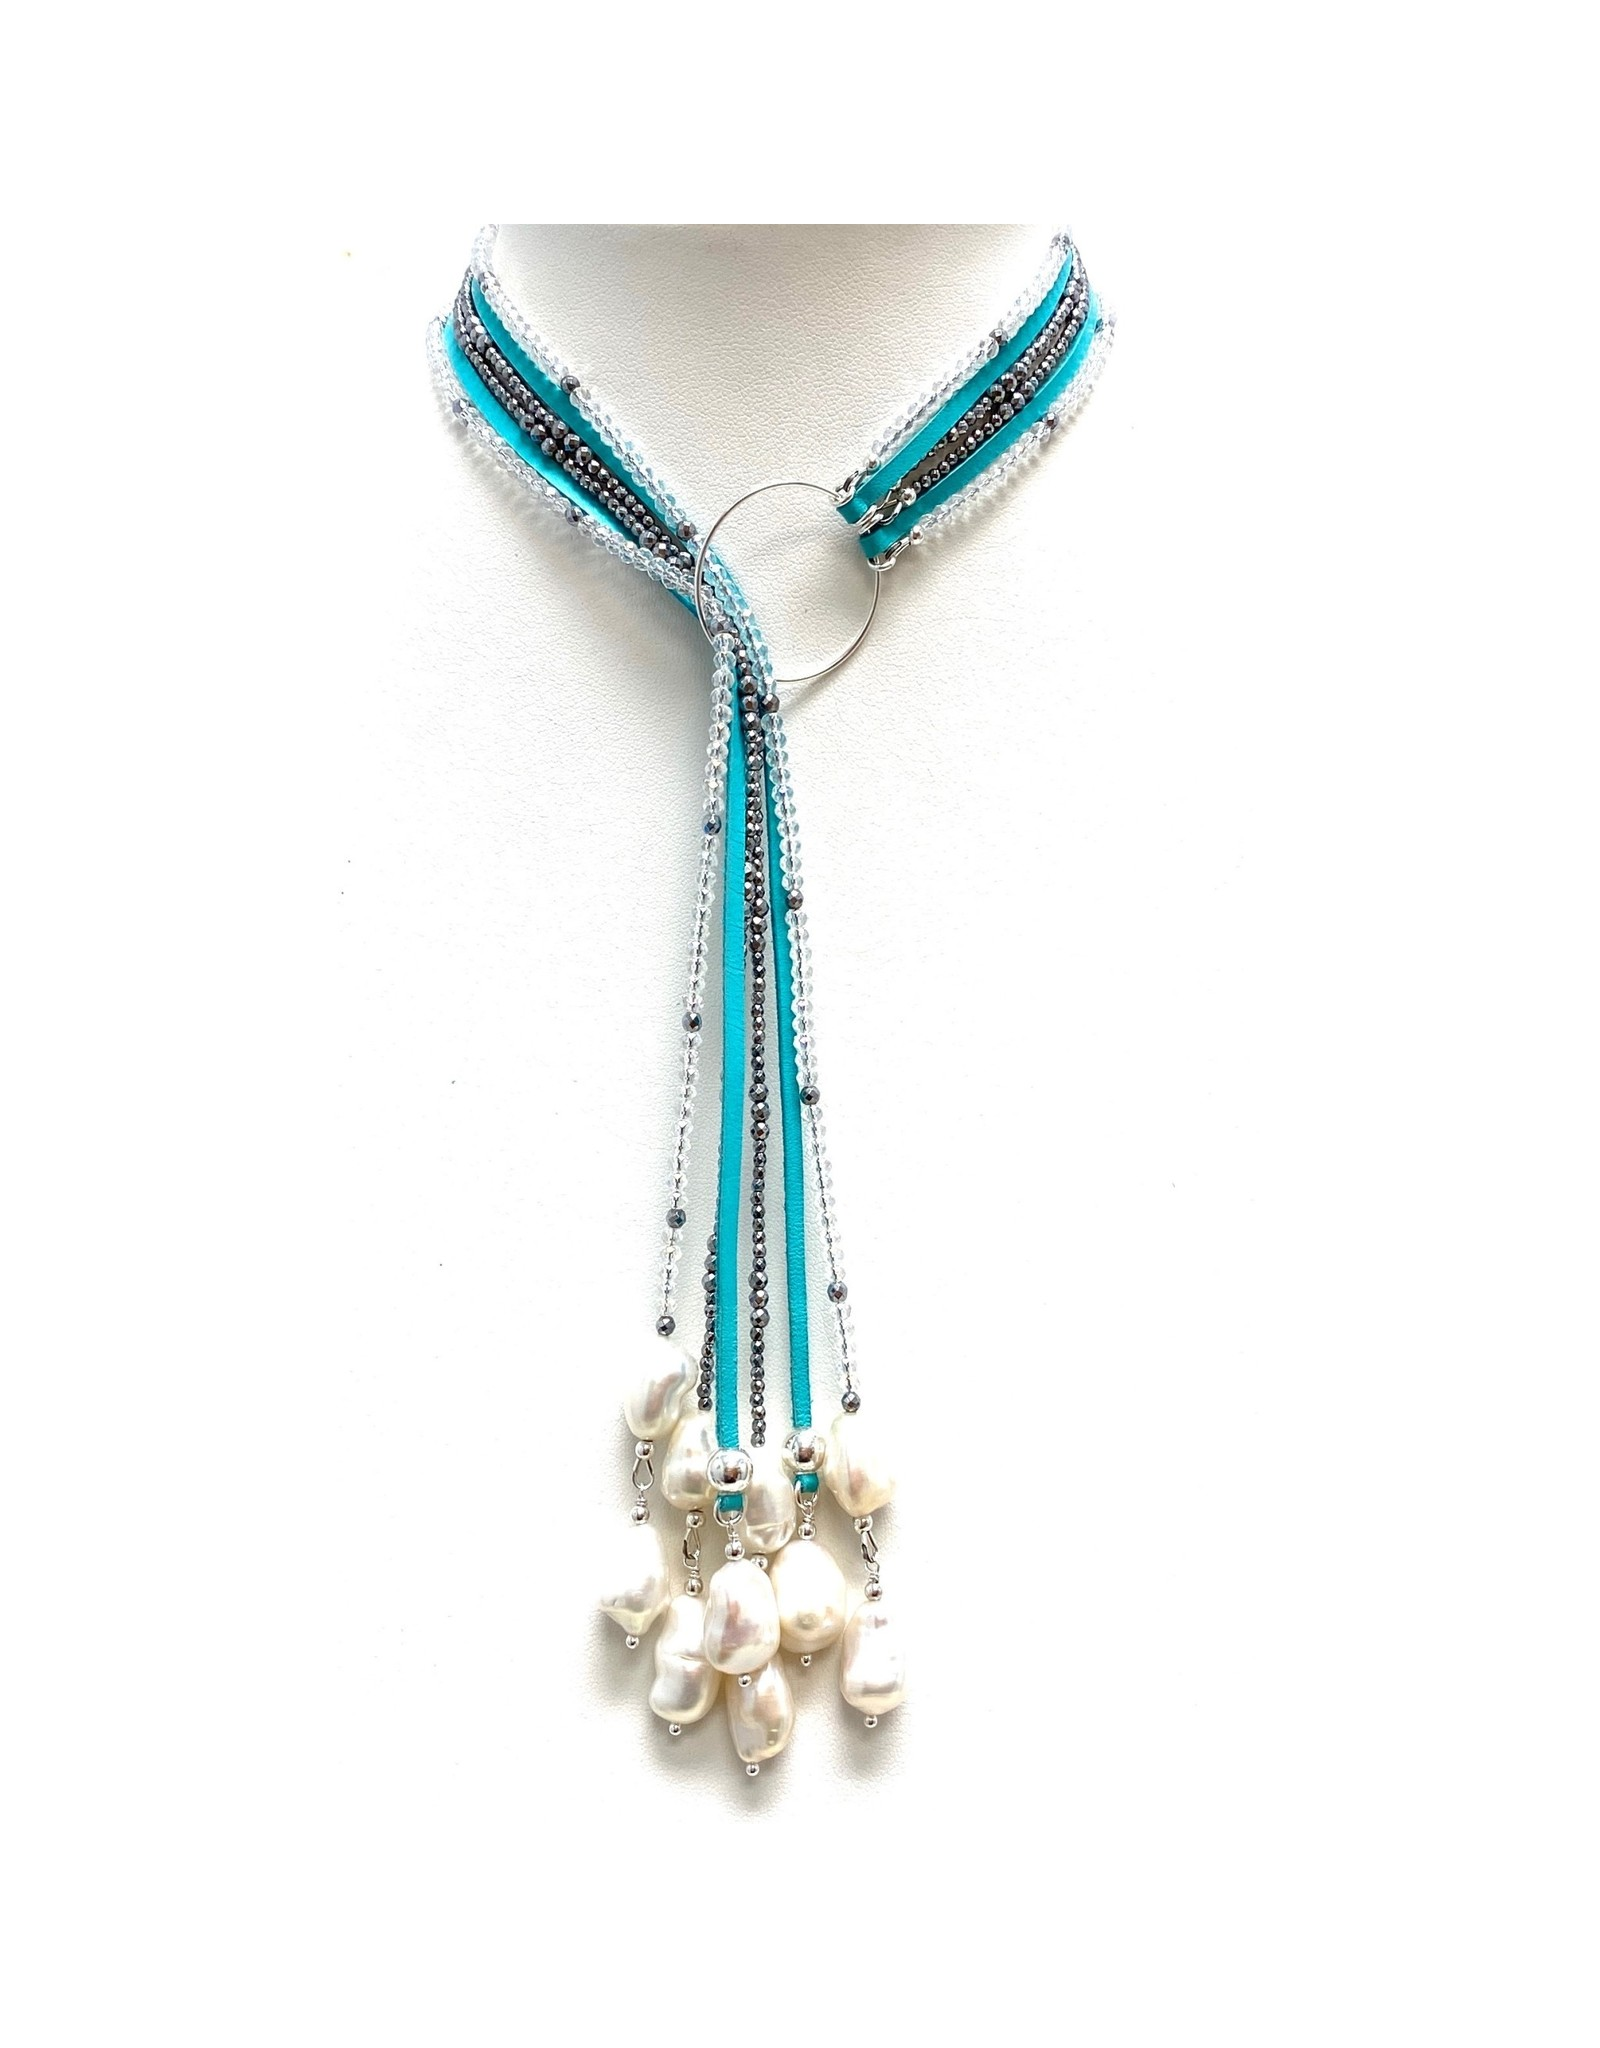 Mixed Media Teal Leather, Hematite, Crystal & FWP Lariat